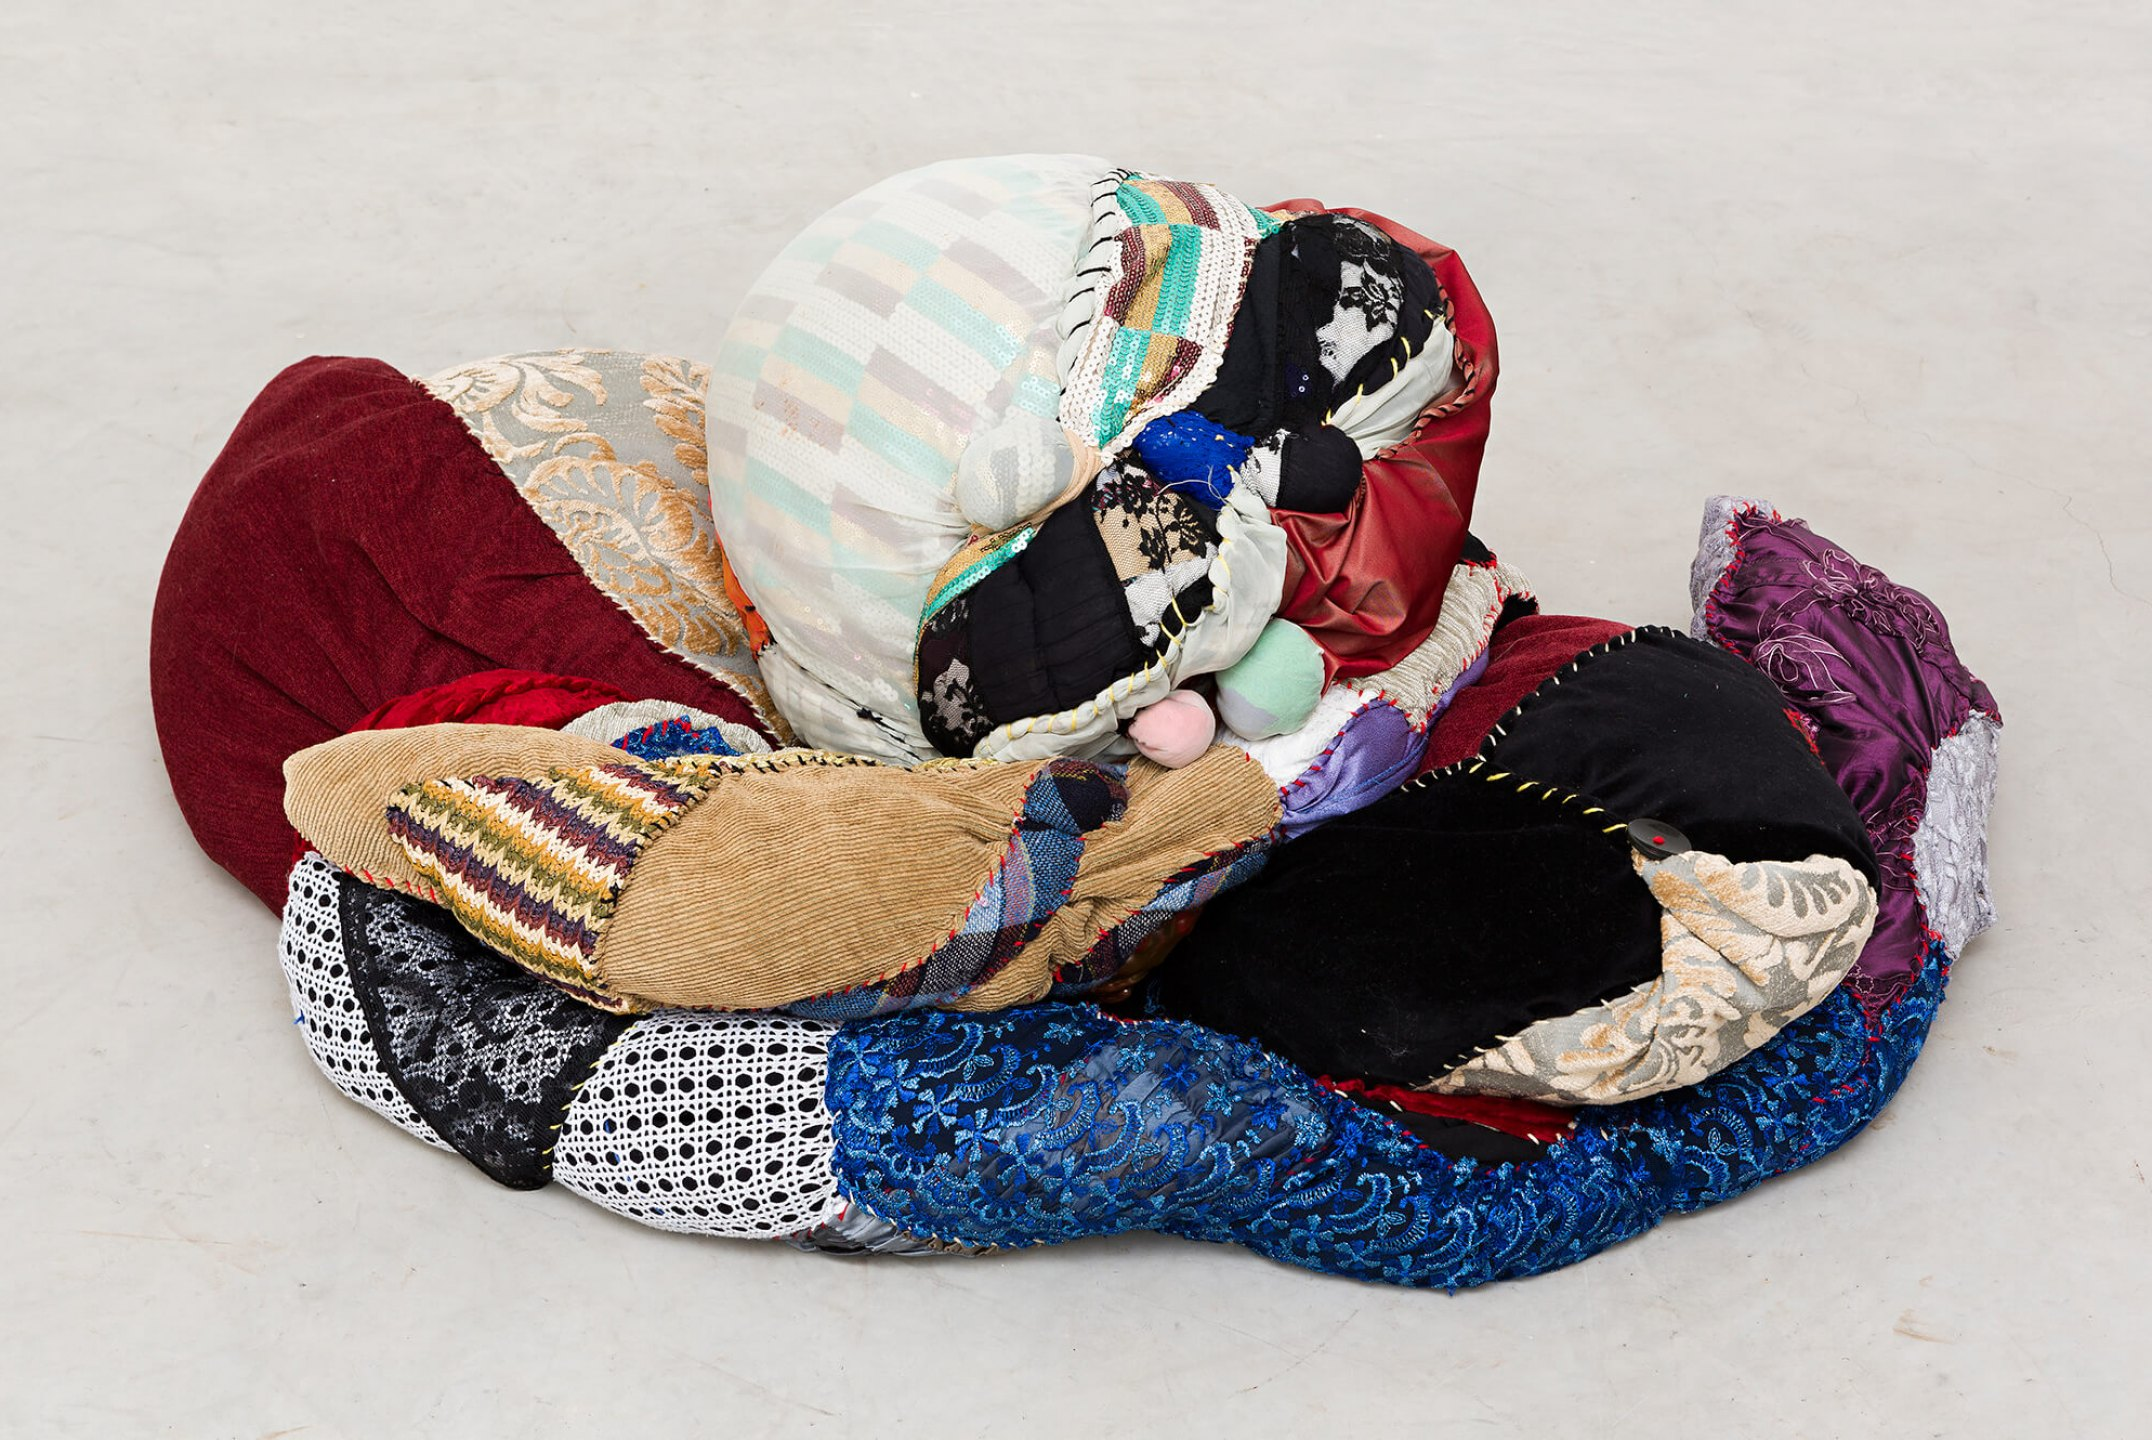 Sonia Gomes, <em>untitled</em>, 2015, different fabrics on wire support, 50 × 120 × 70 cm - Mendes Wood DM